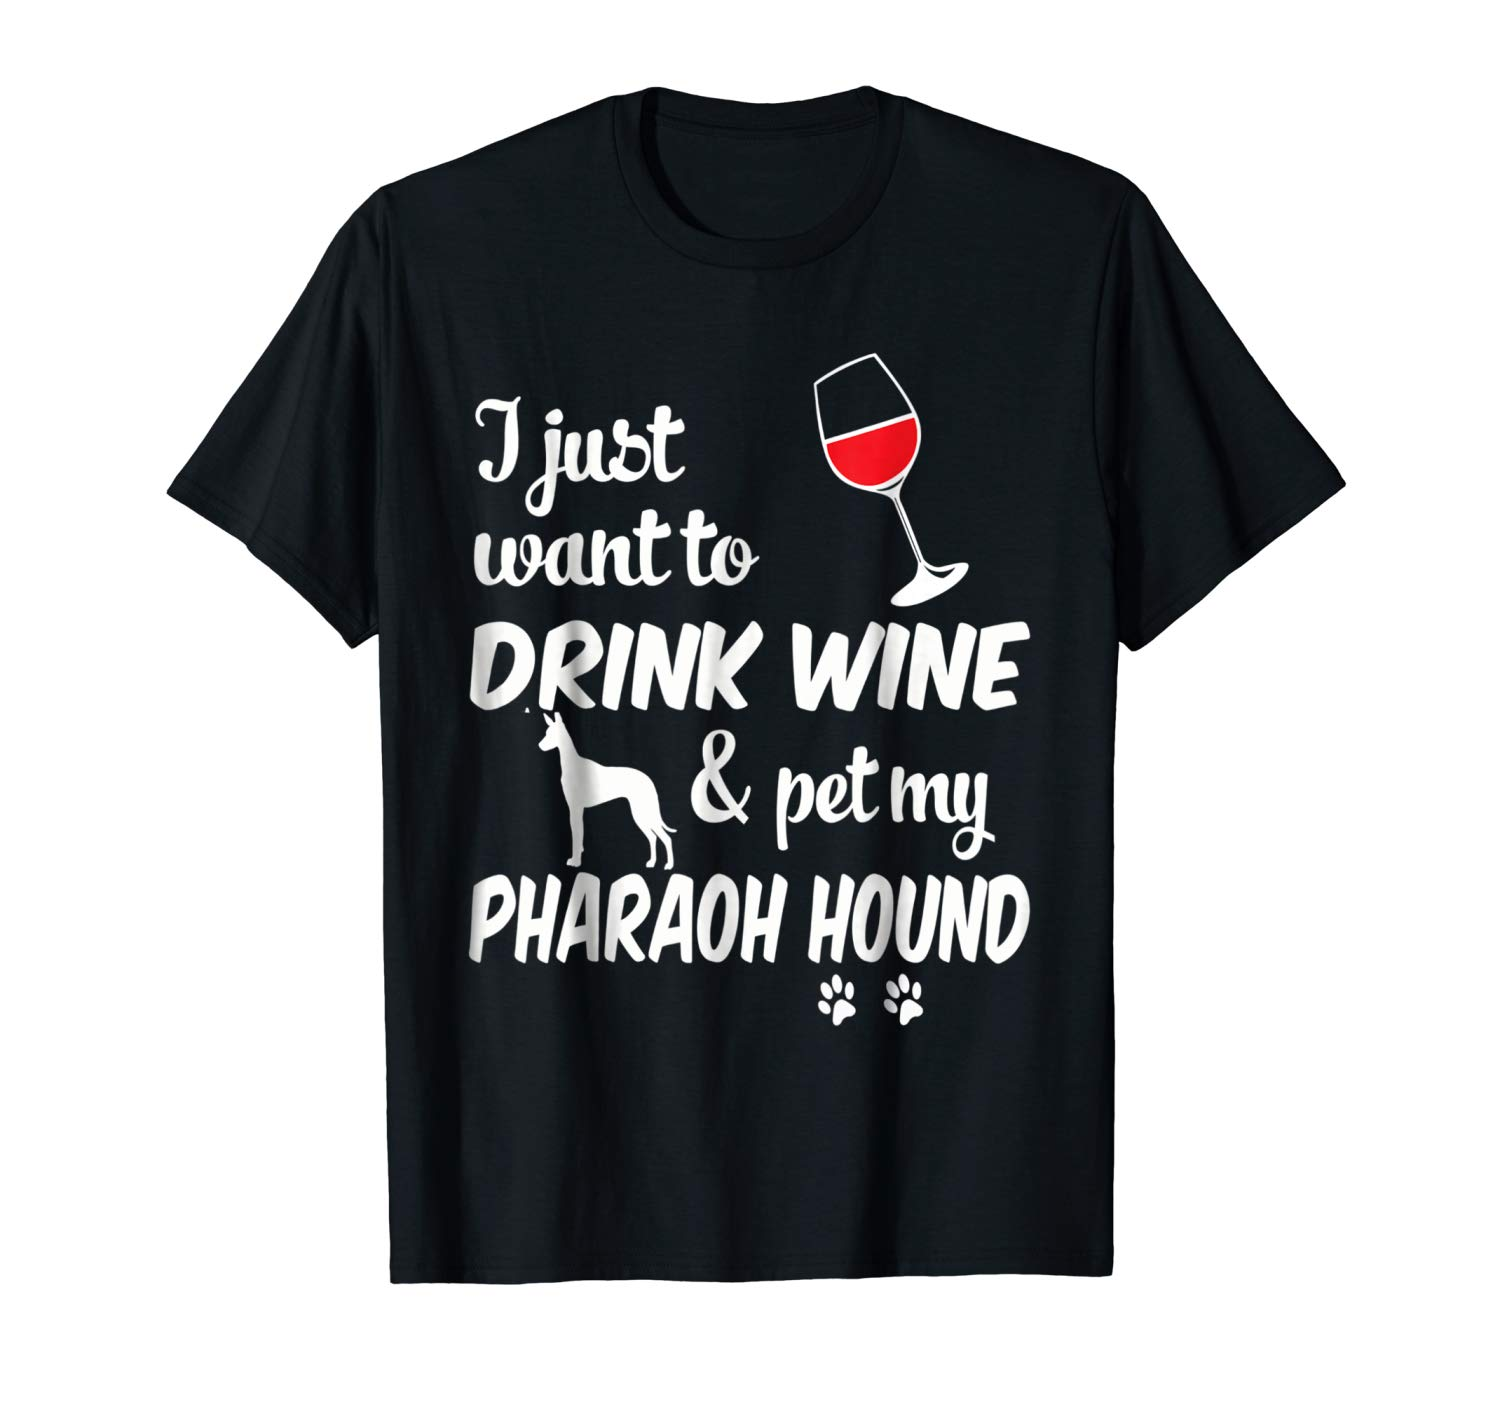 Just Want To Drink Wine & Pet Pharaoh Hound Tshirt